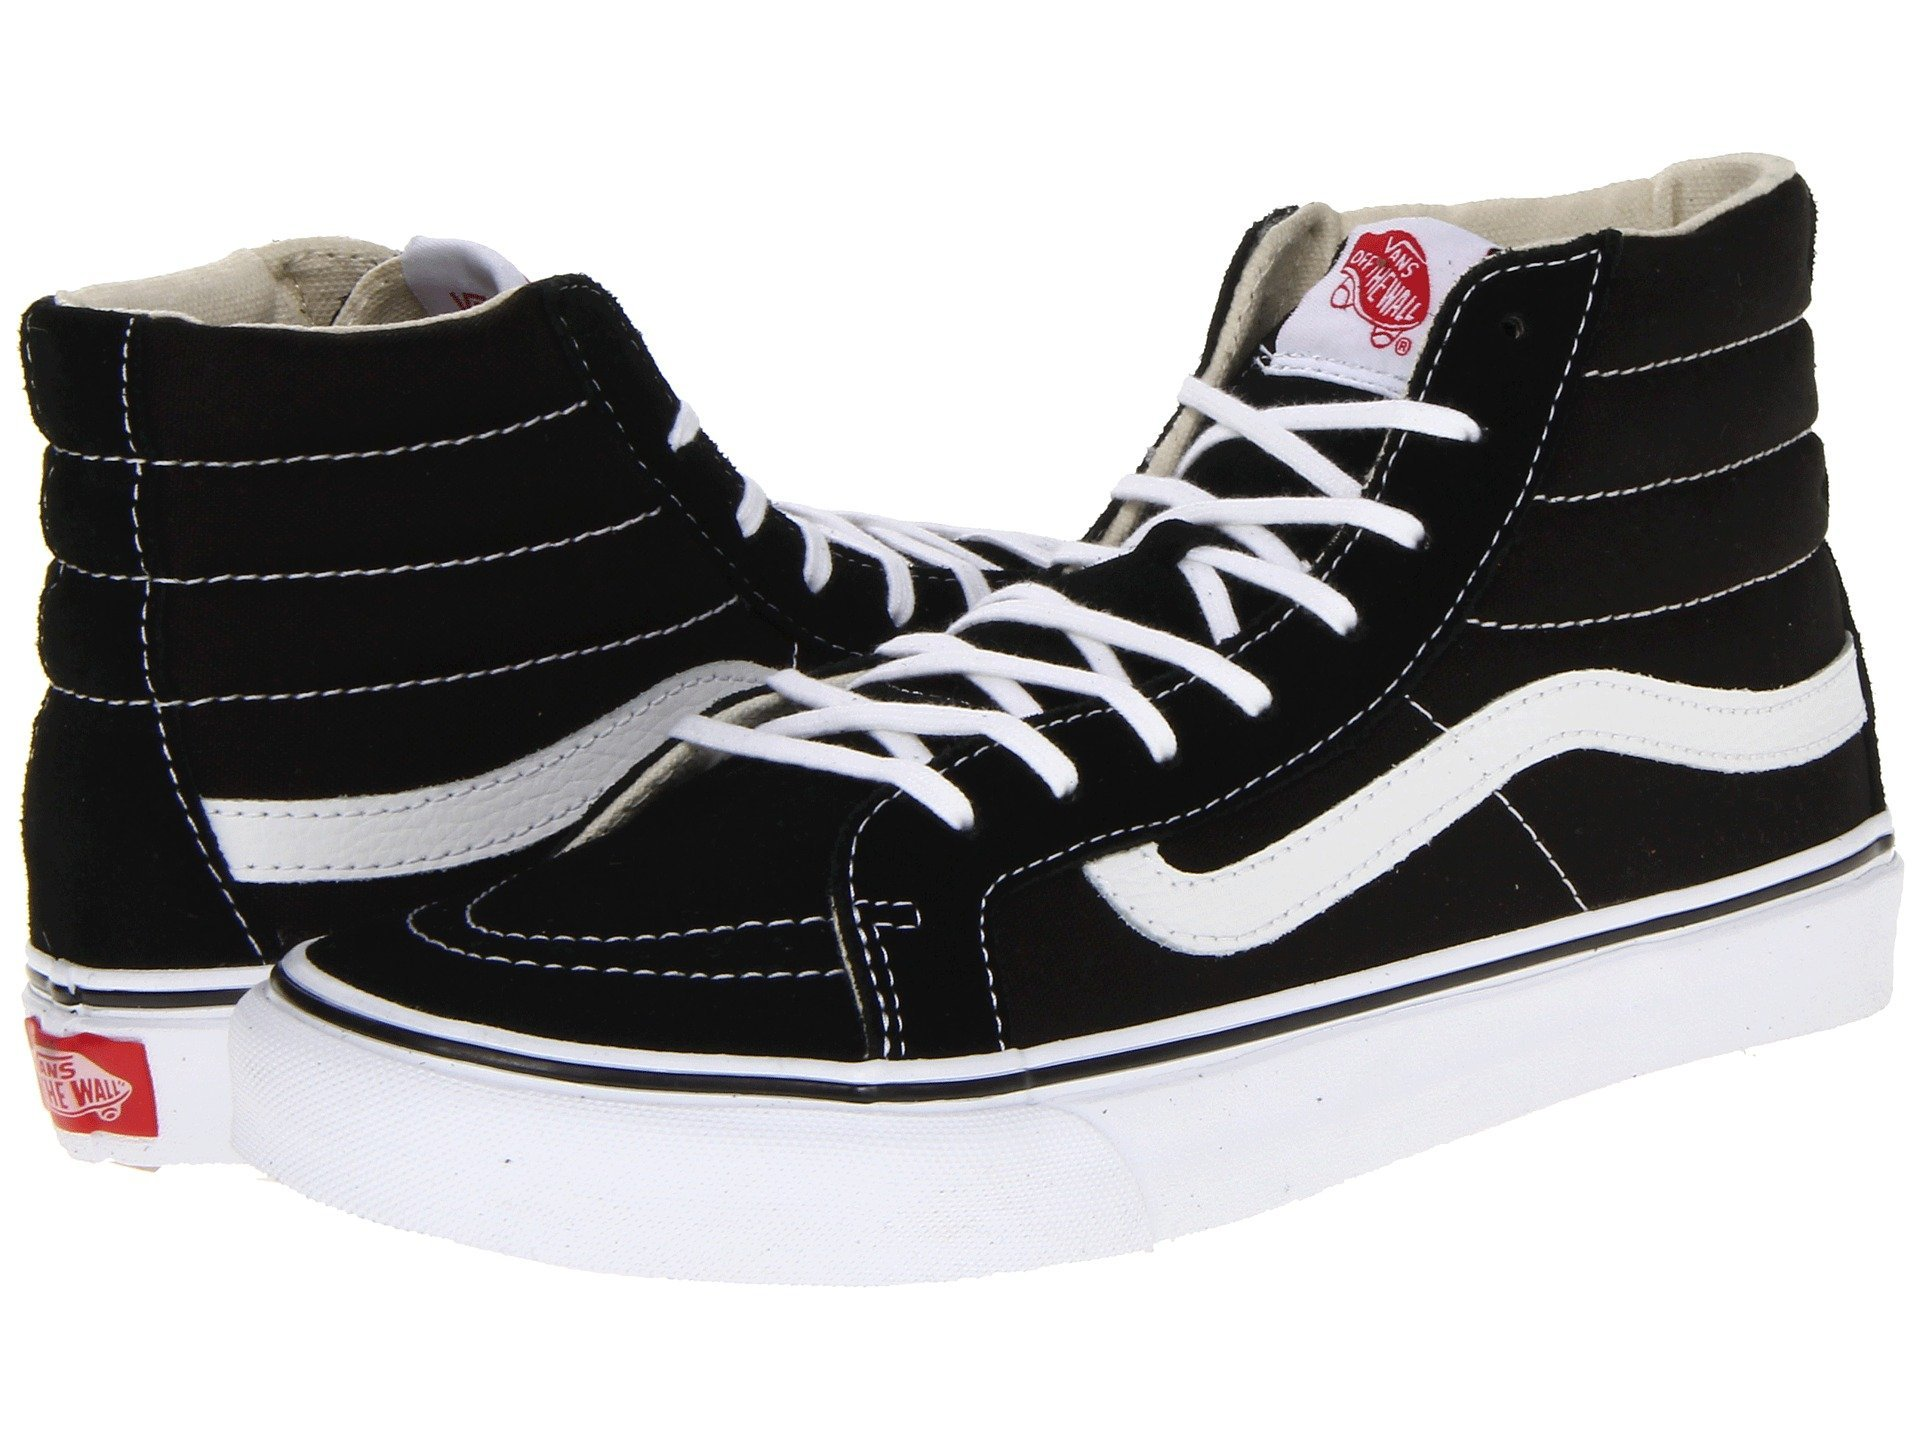 Vans Mens Sk8-Hi Slim Hight Top Lace up Skateboarding Shoes (7 B(M) US Women/5.5 D(M) US Men, Black/True White)